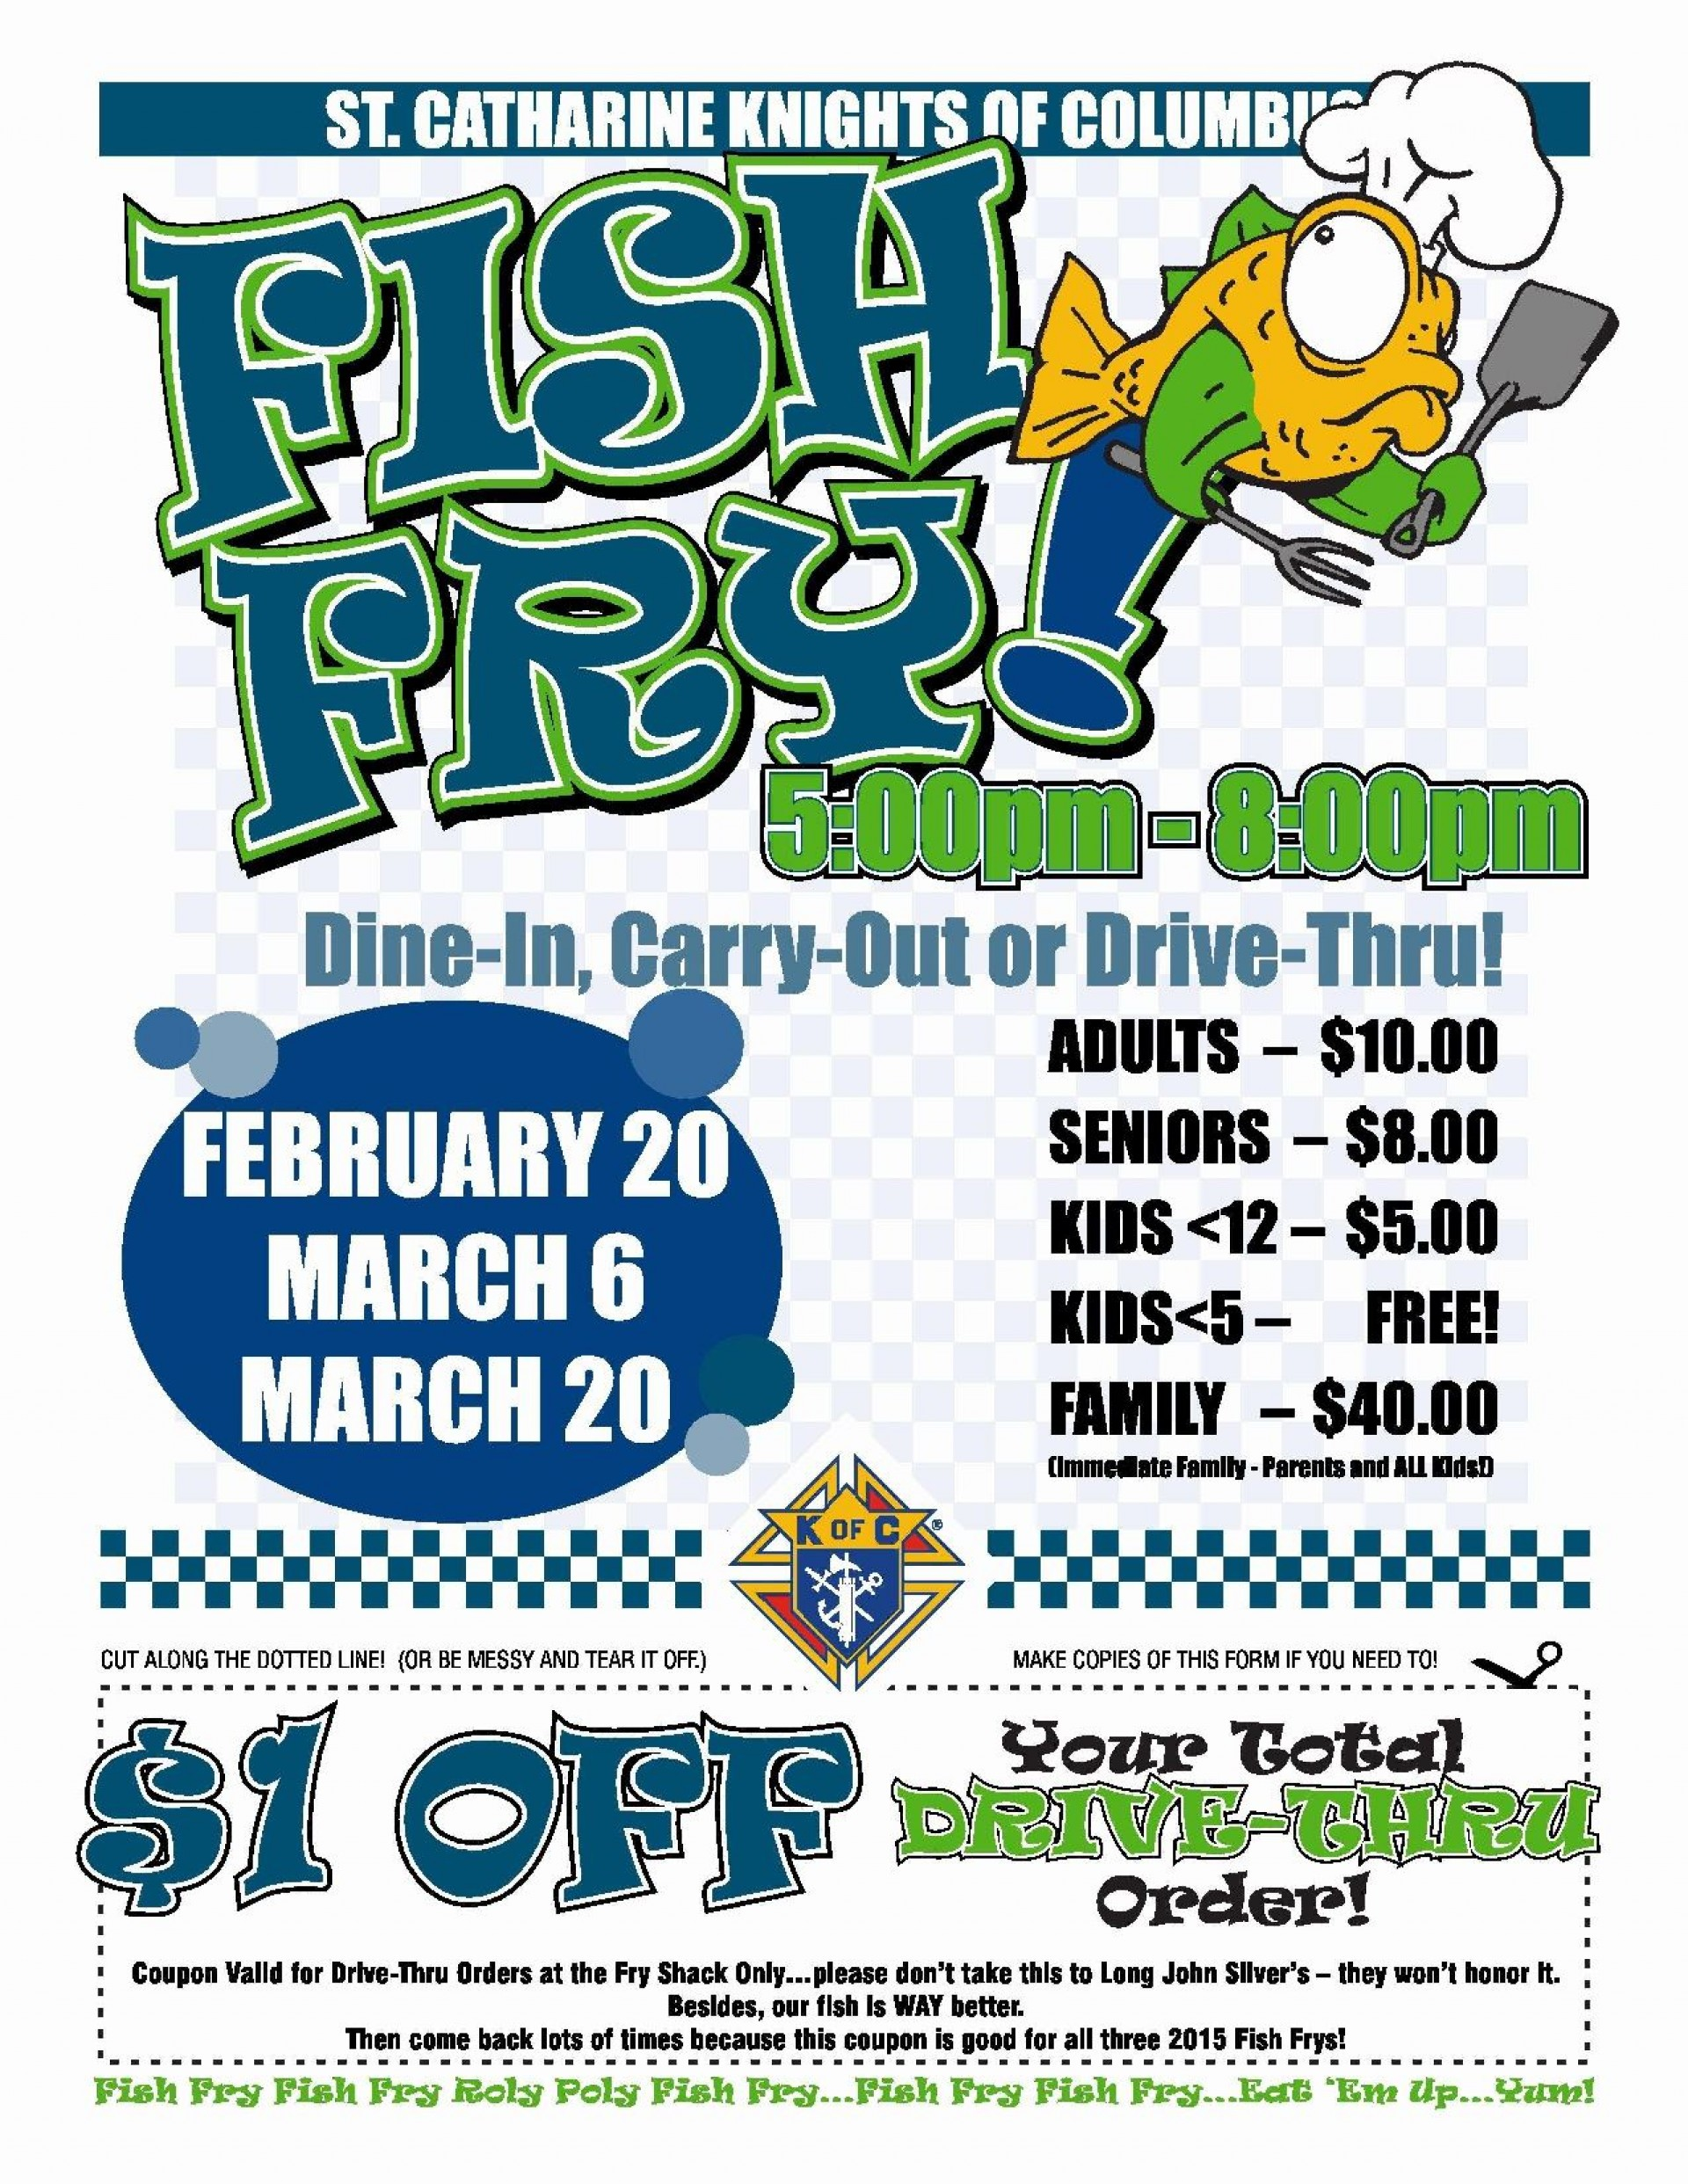 004 Impressive Fish Fry Flyer Template Picture  Printable Free Powerpoint Psd1920